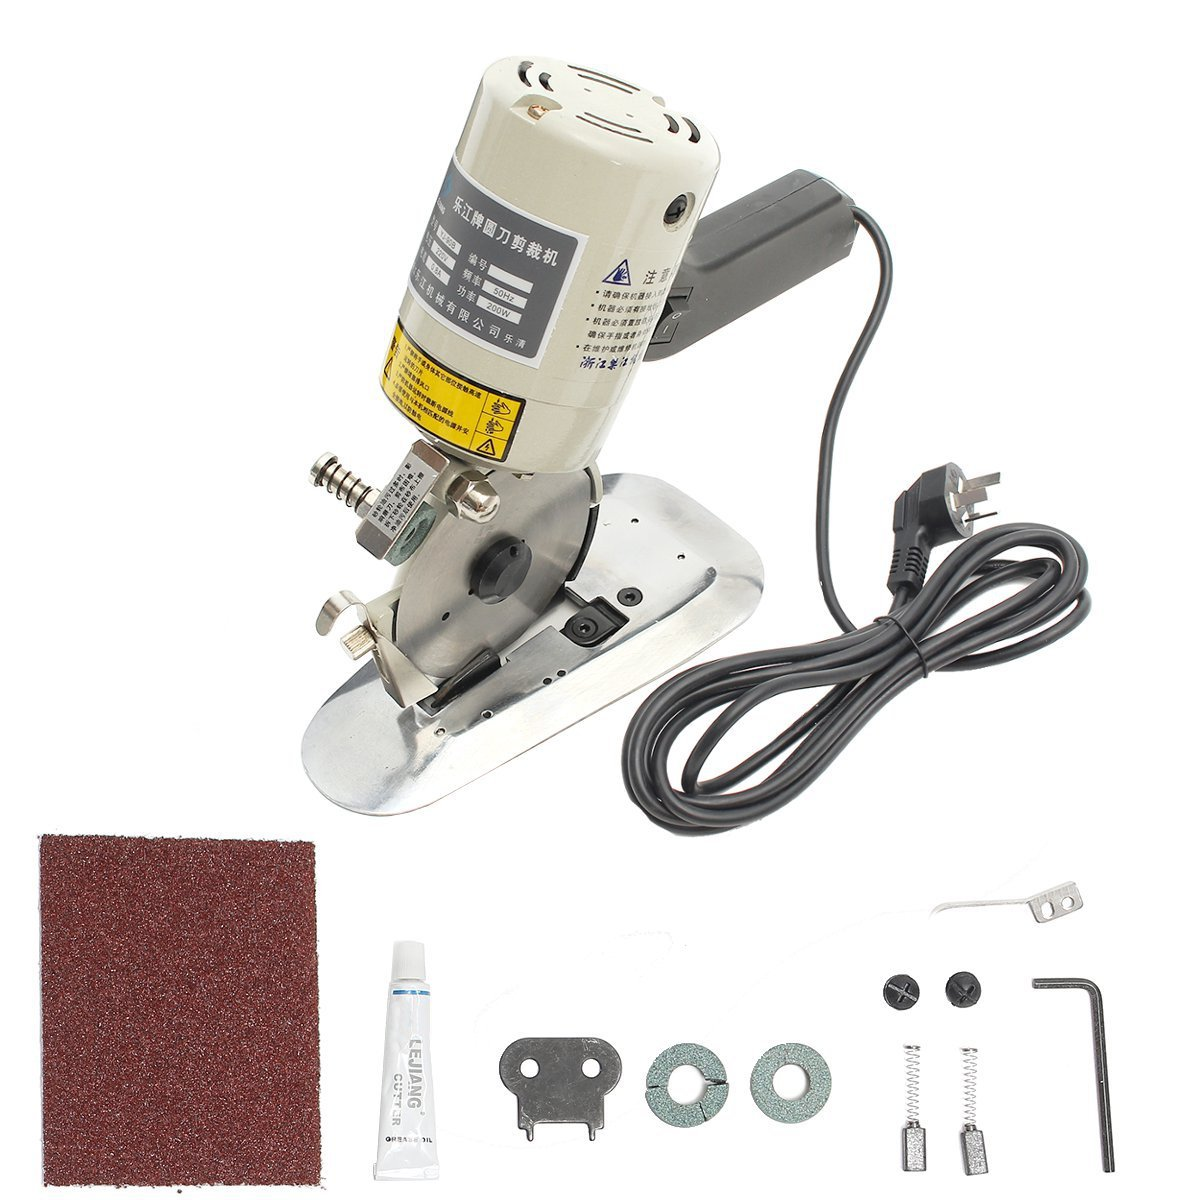 HITSAN 220V 90mm Blade Electric Cloth Textile Cutter Fabric Cutting Machine Saw One Piece